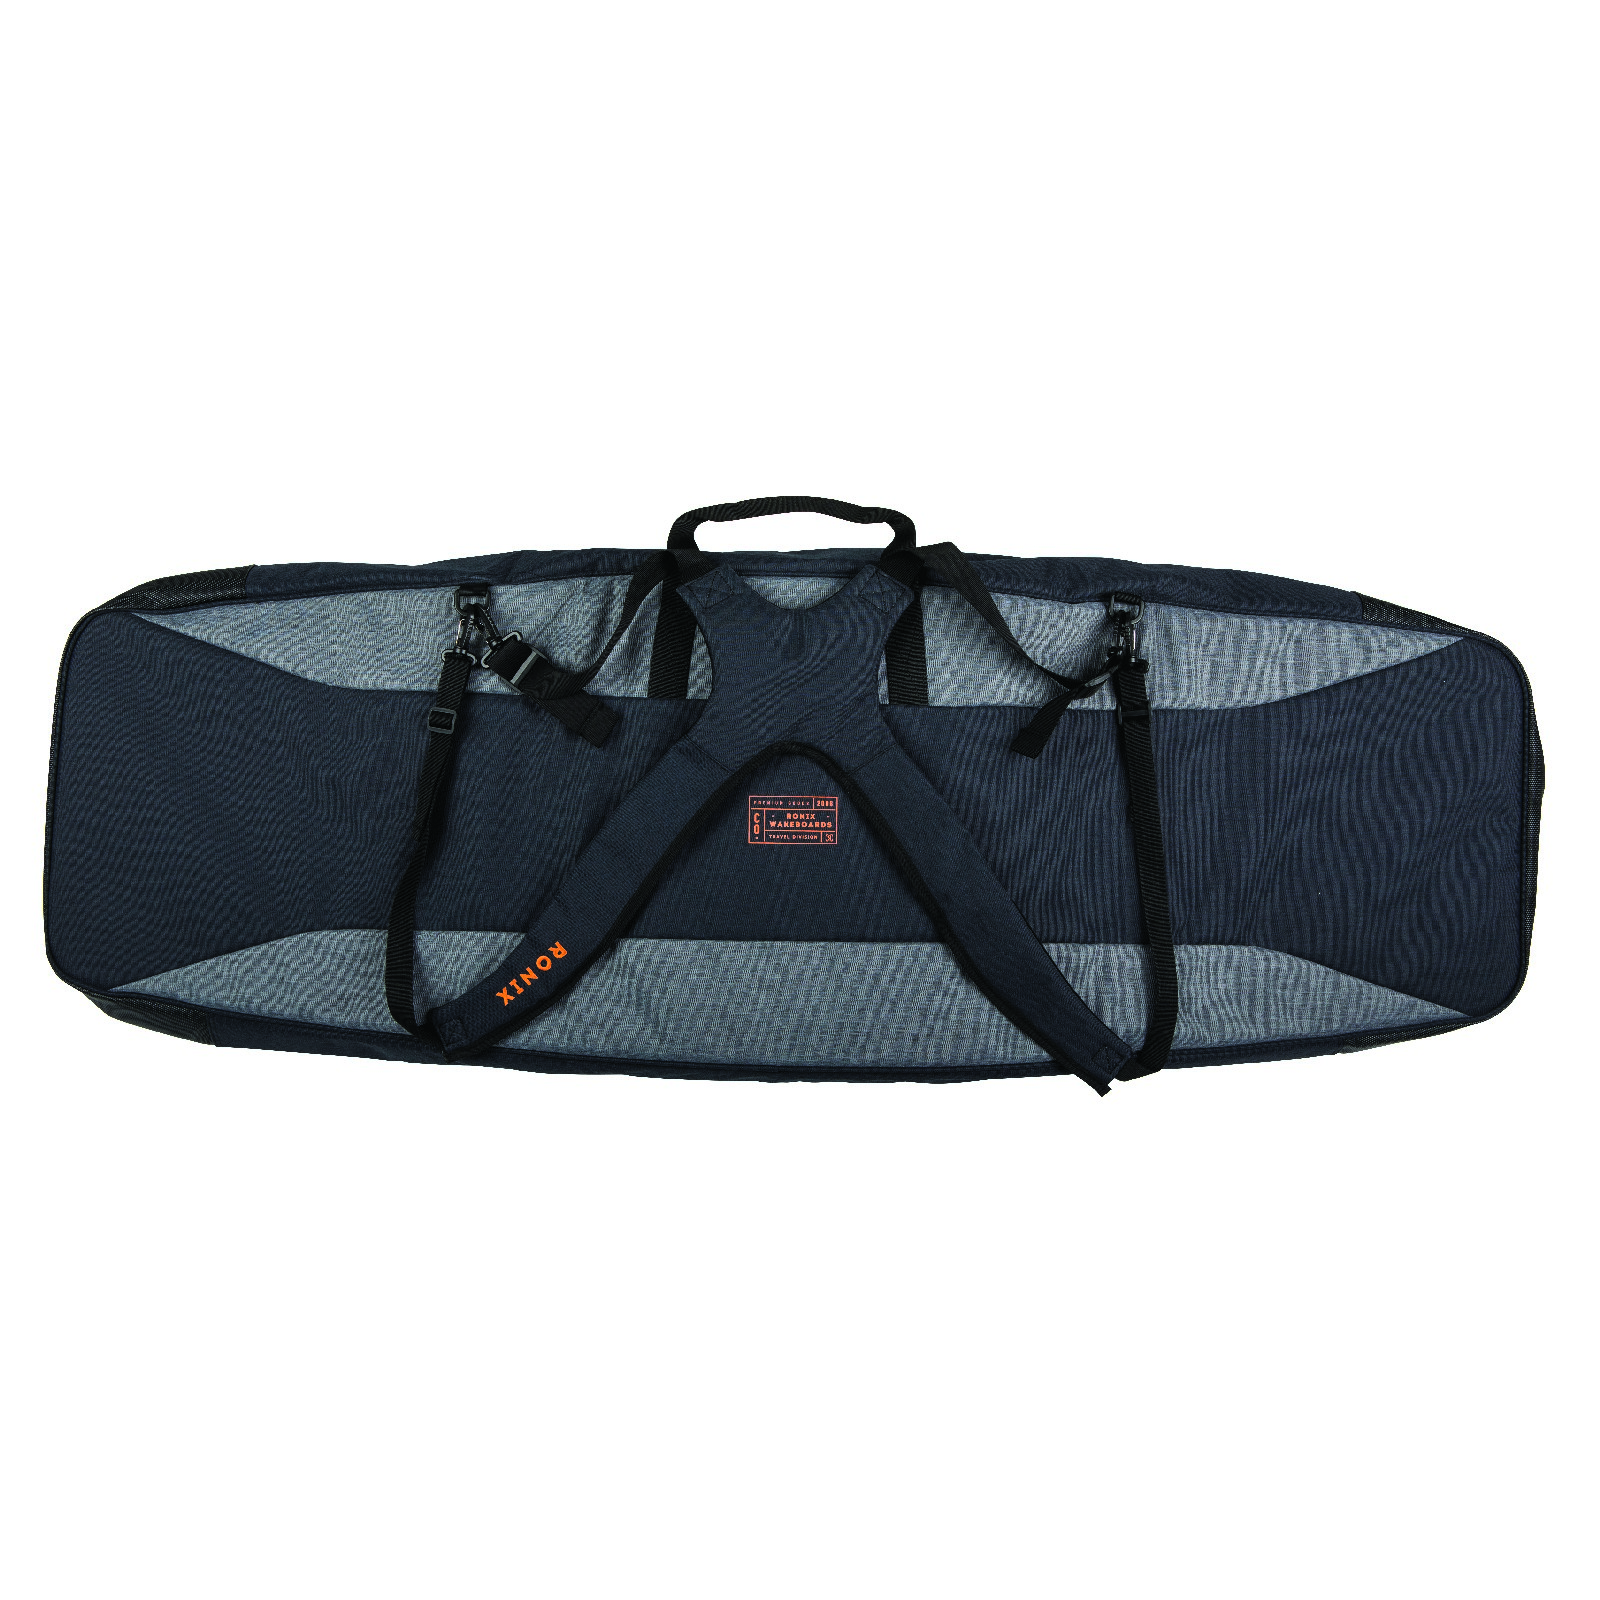 LINKS PADDED BACKPACK BOARDBAG RONIX 2019